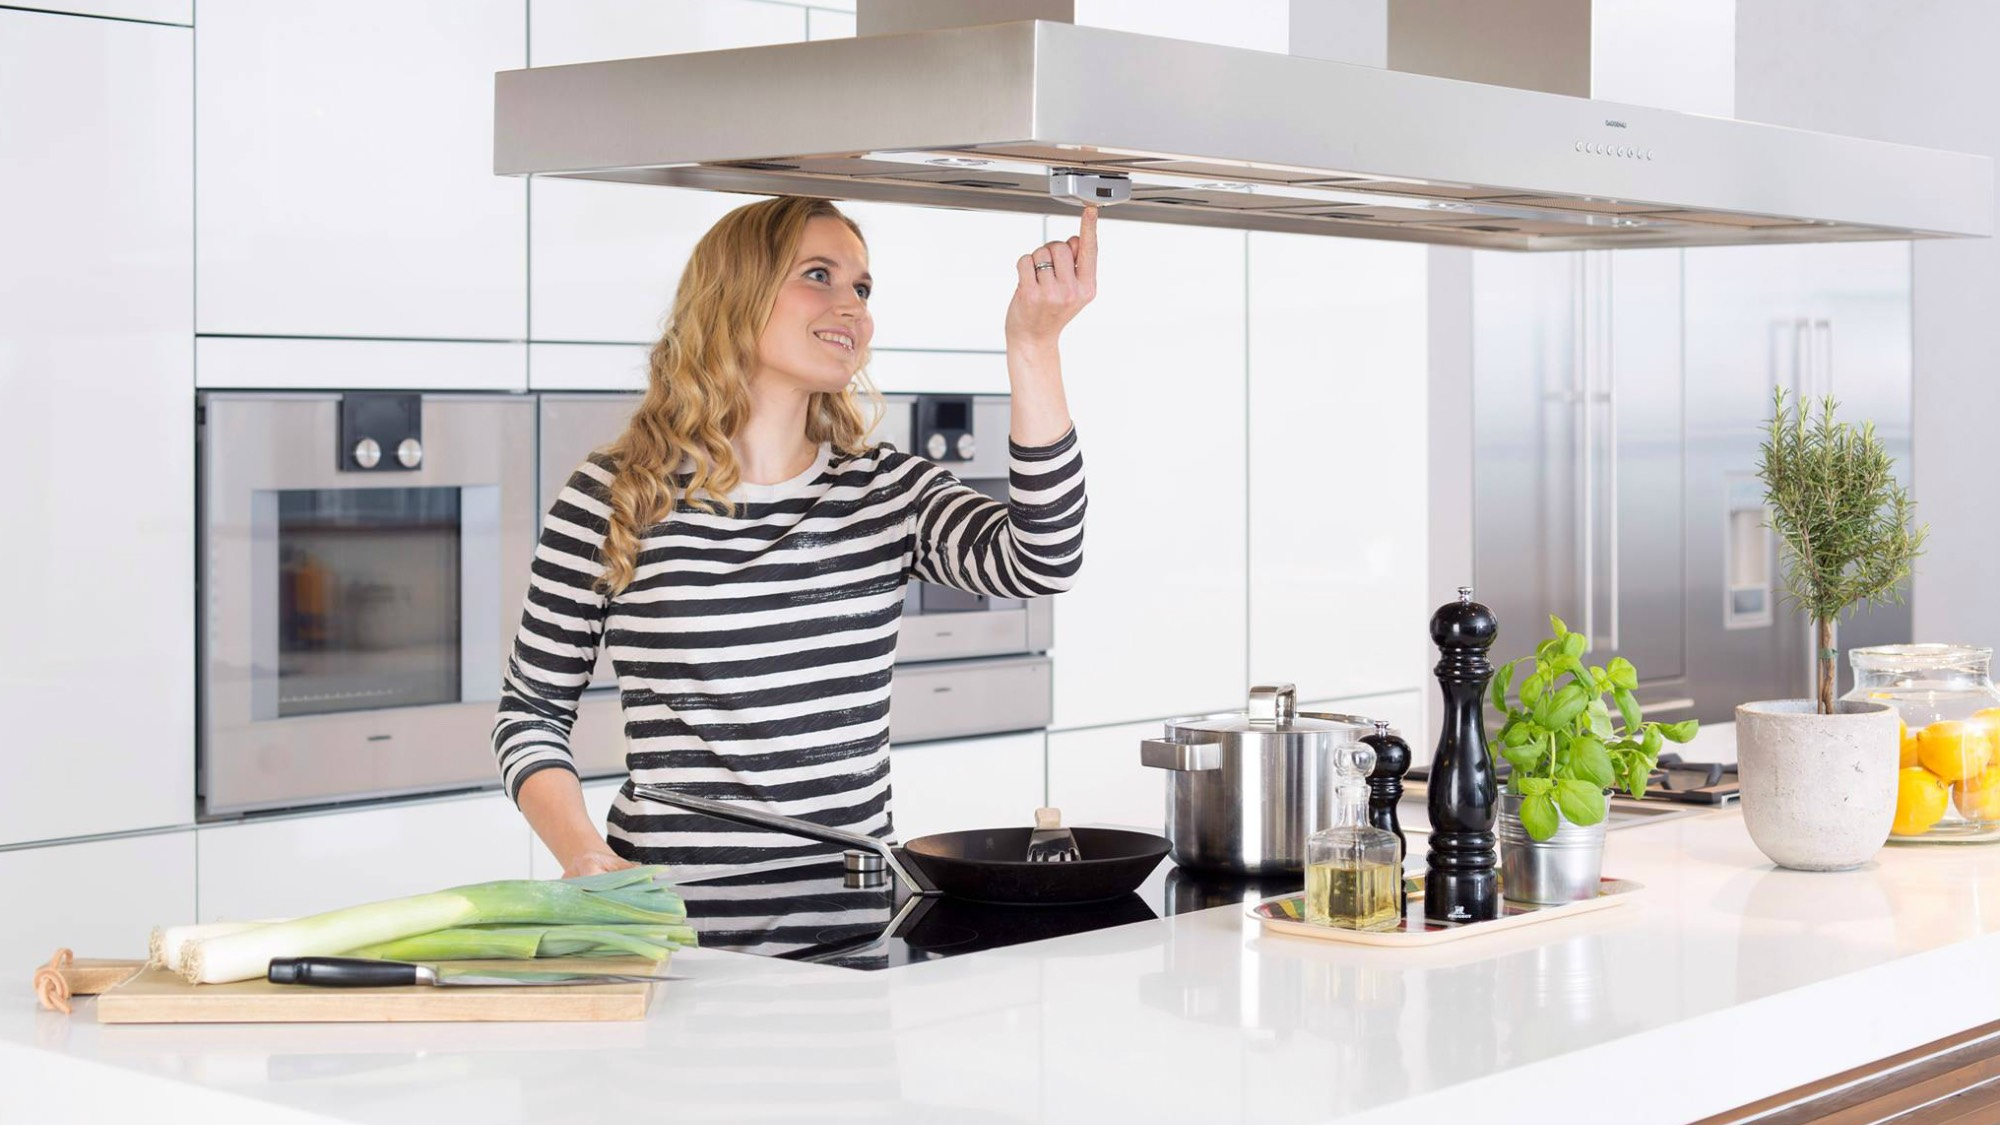 Woman pressing on a device above a stove